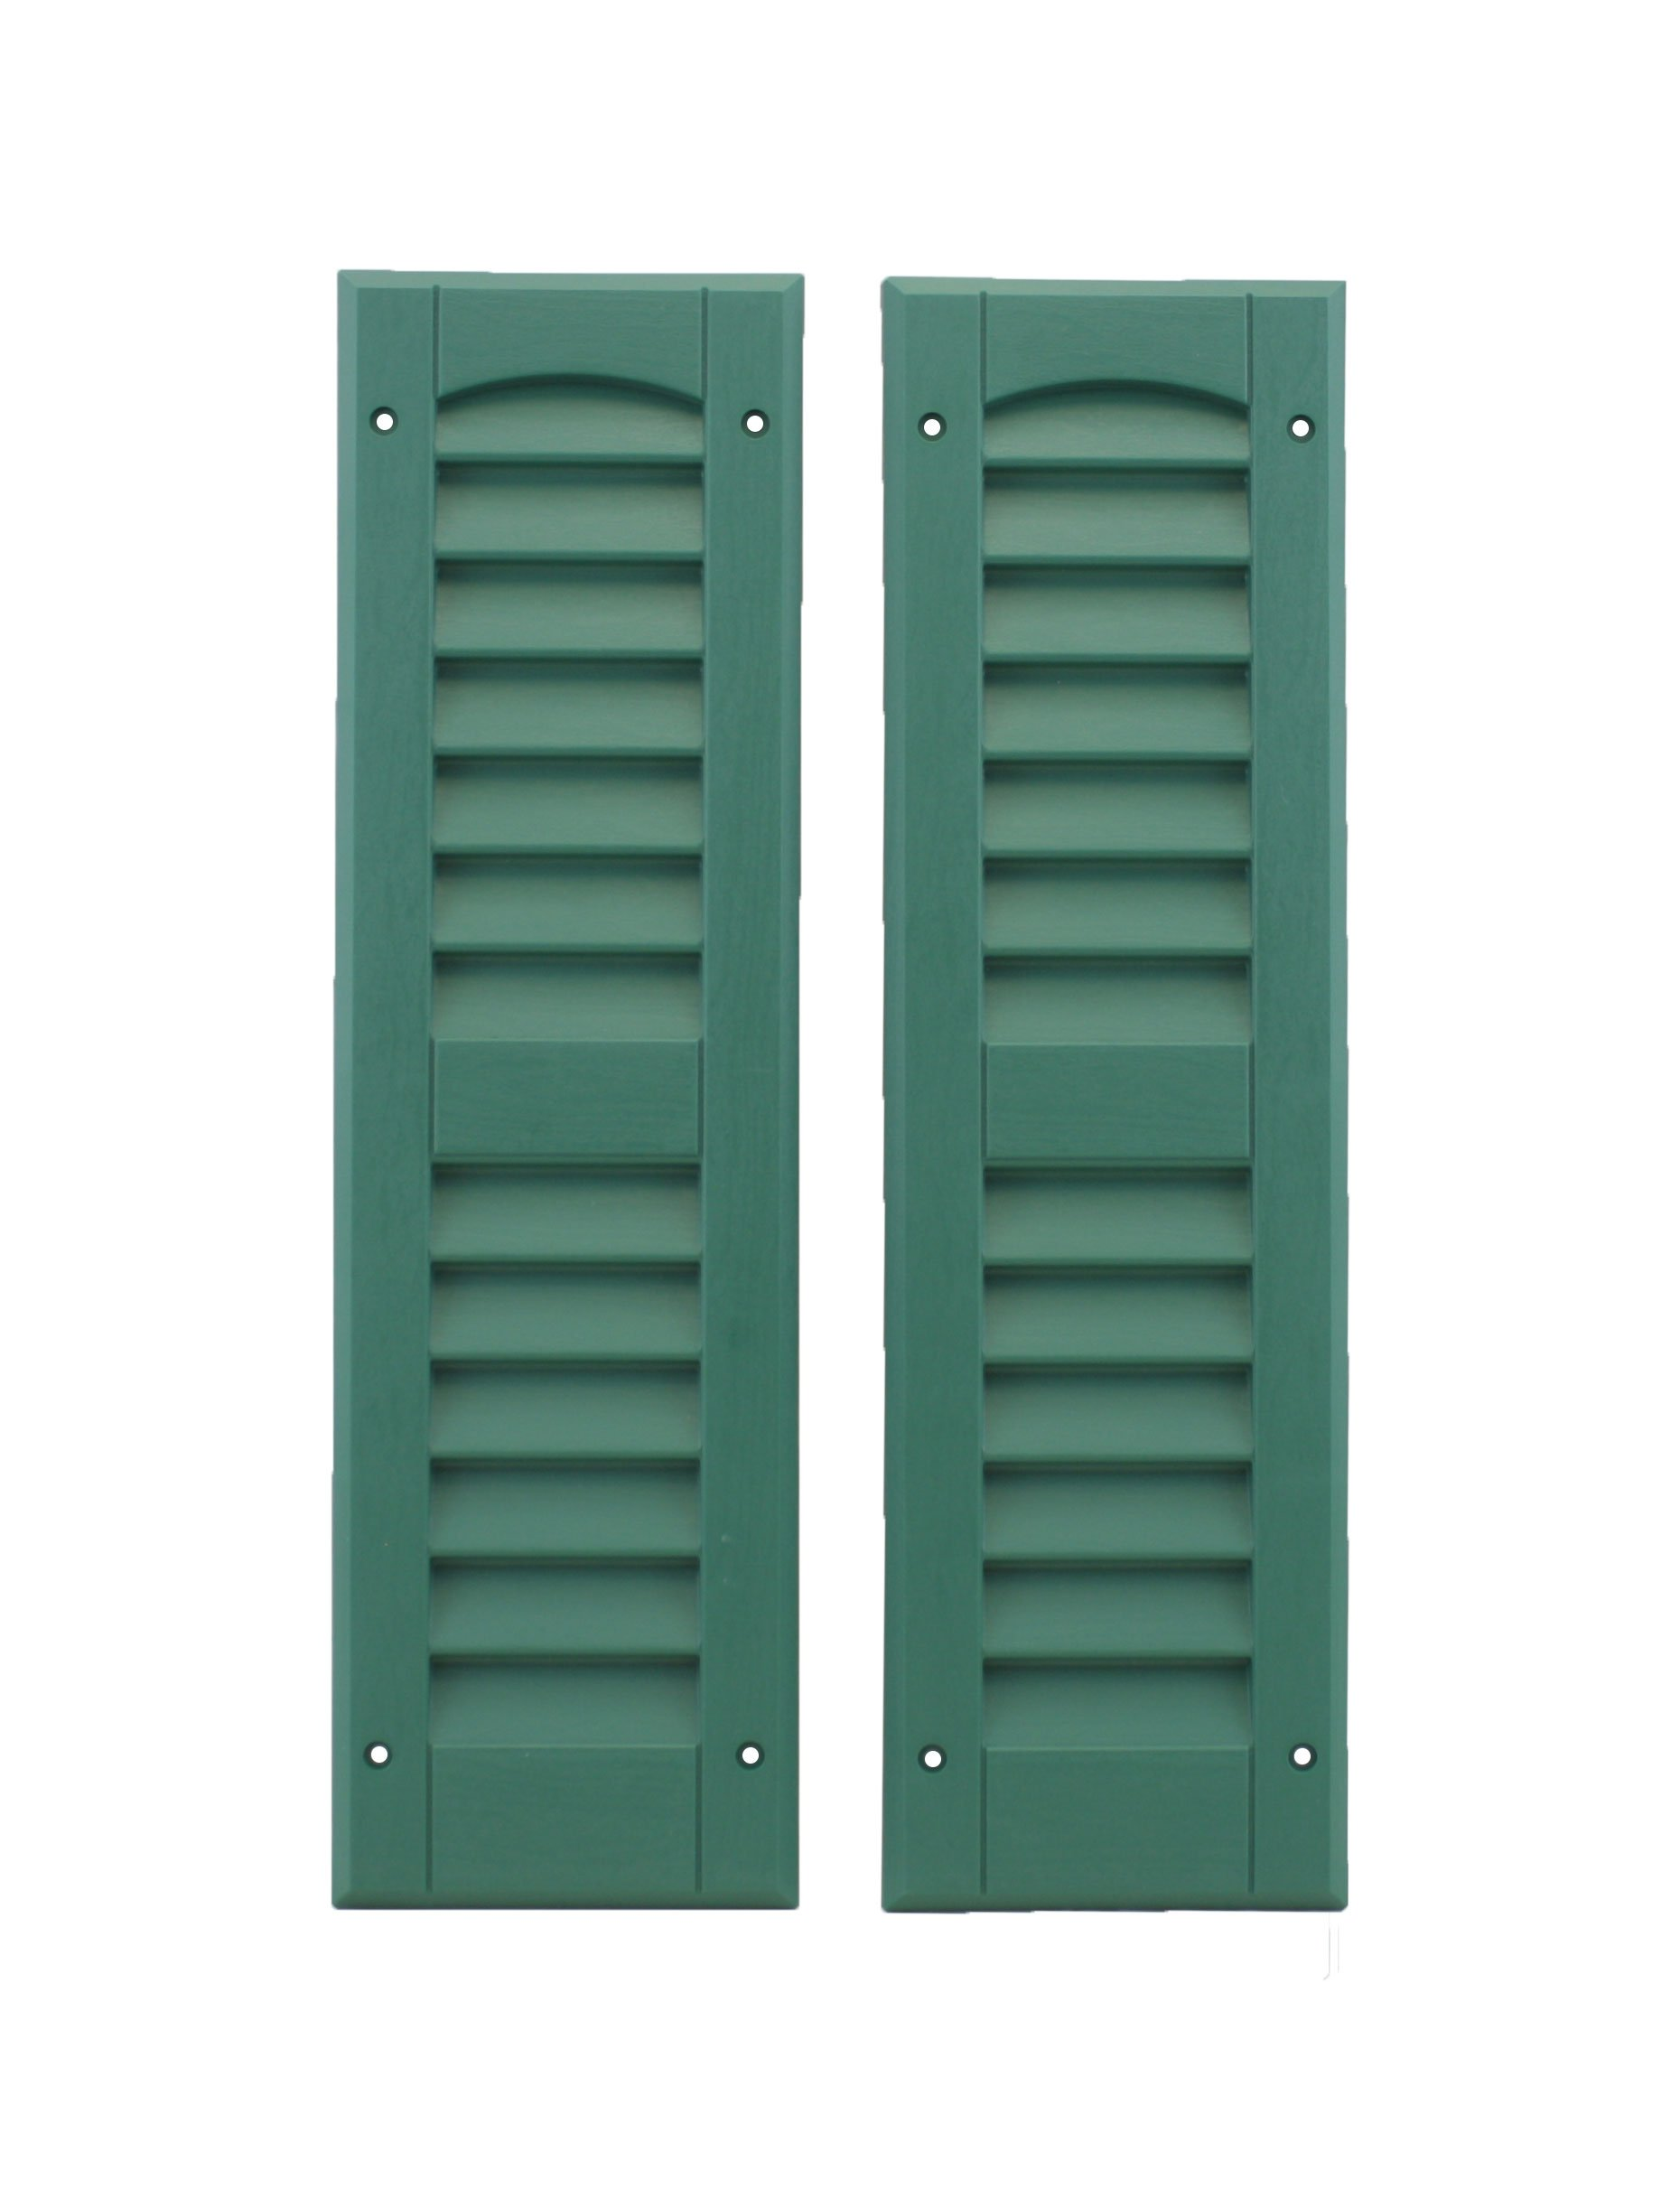 Louvered Shed or Playhouse Shutters Green 6'' X 21'' 1 Pair